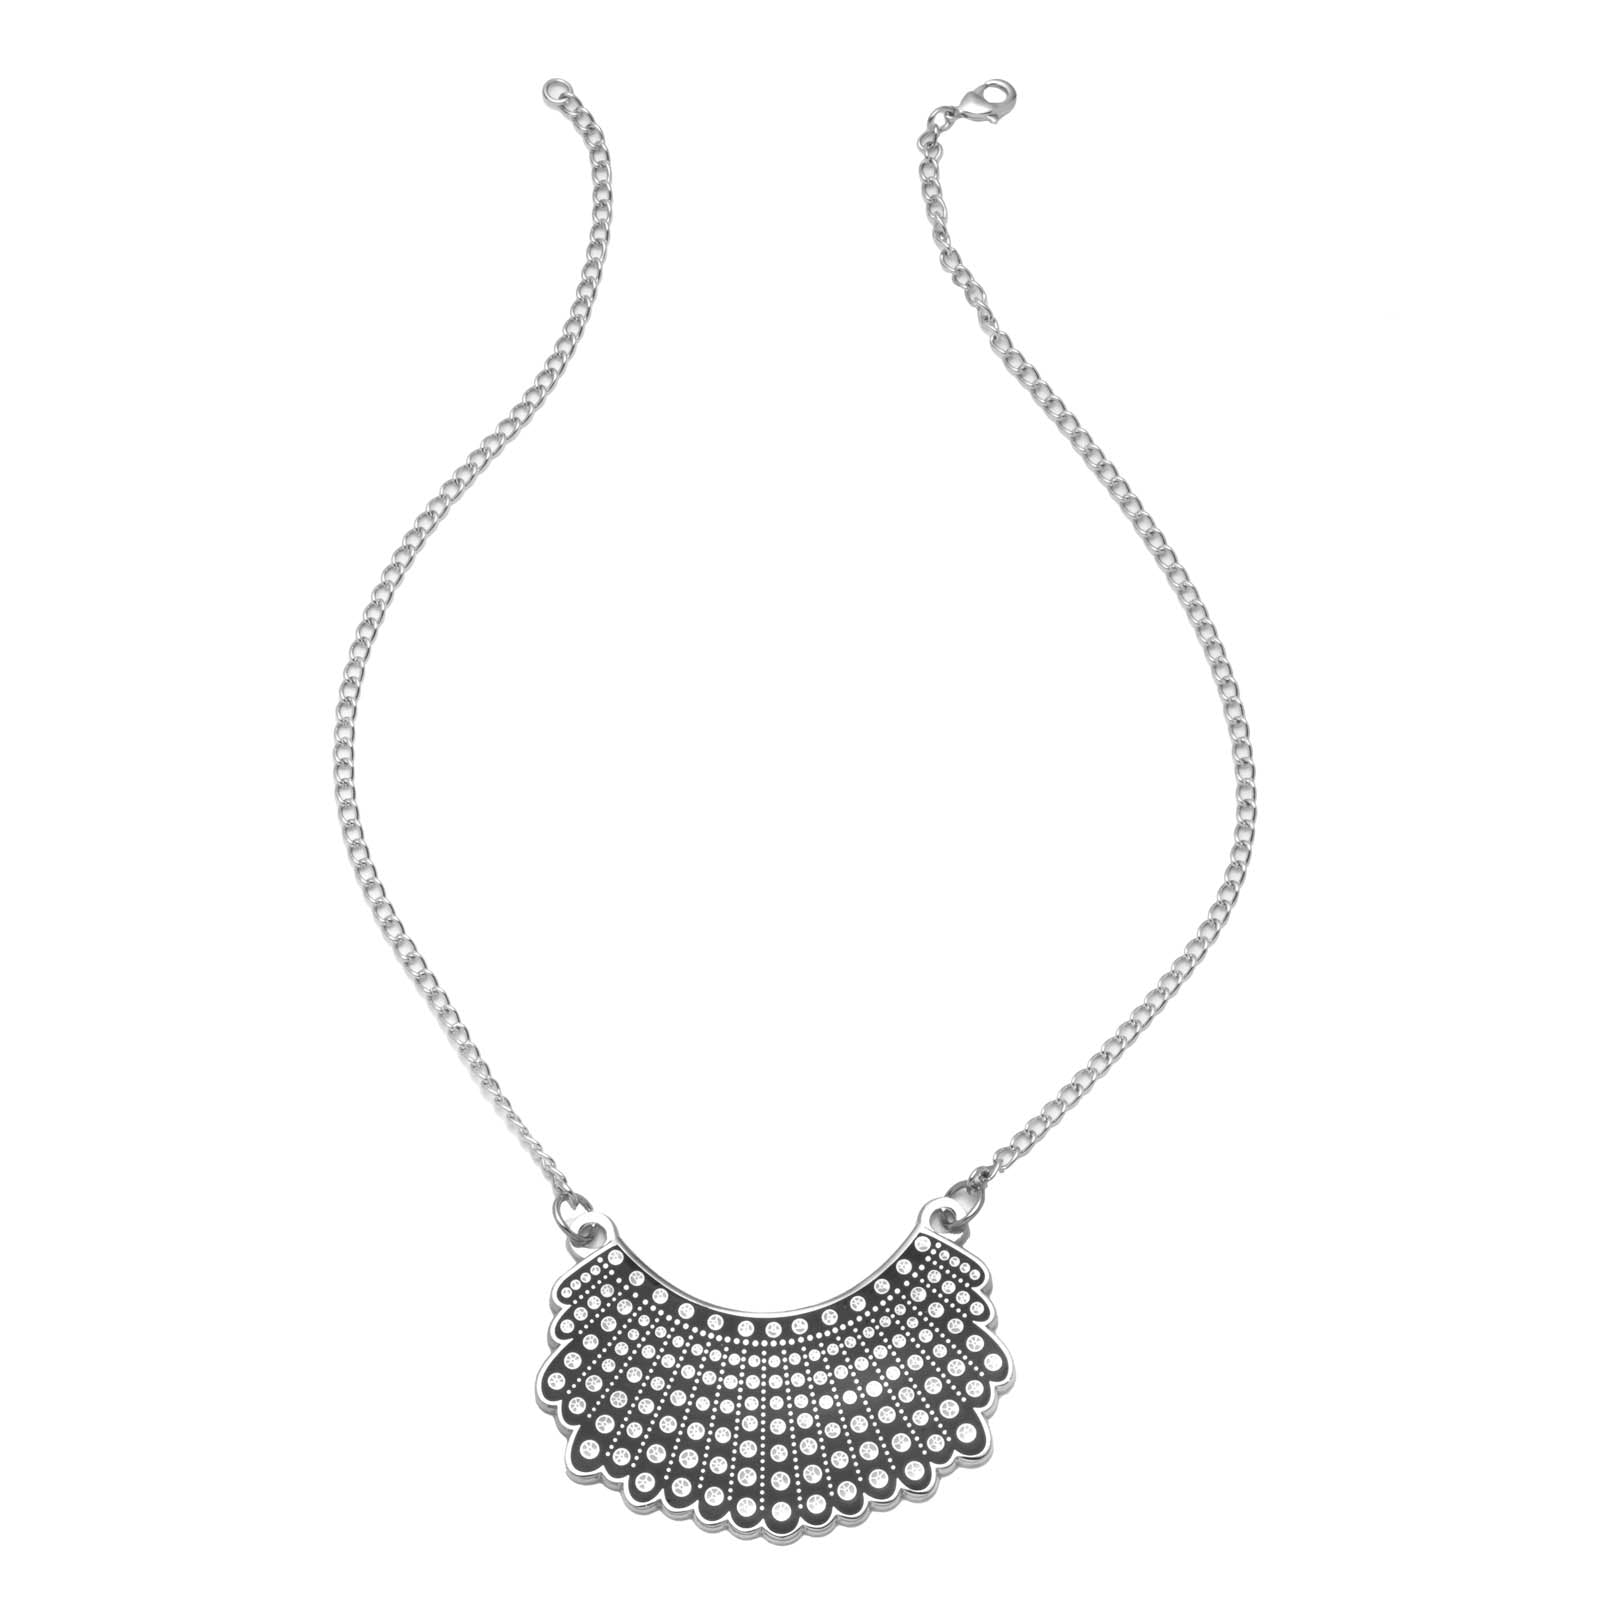 8ed340589 Dissent Collar Necklace - Silver – Truly BoHotique